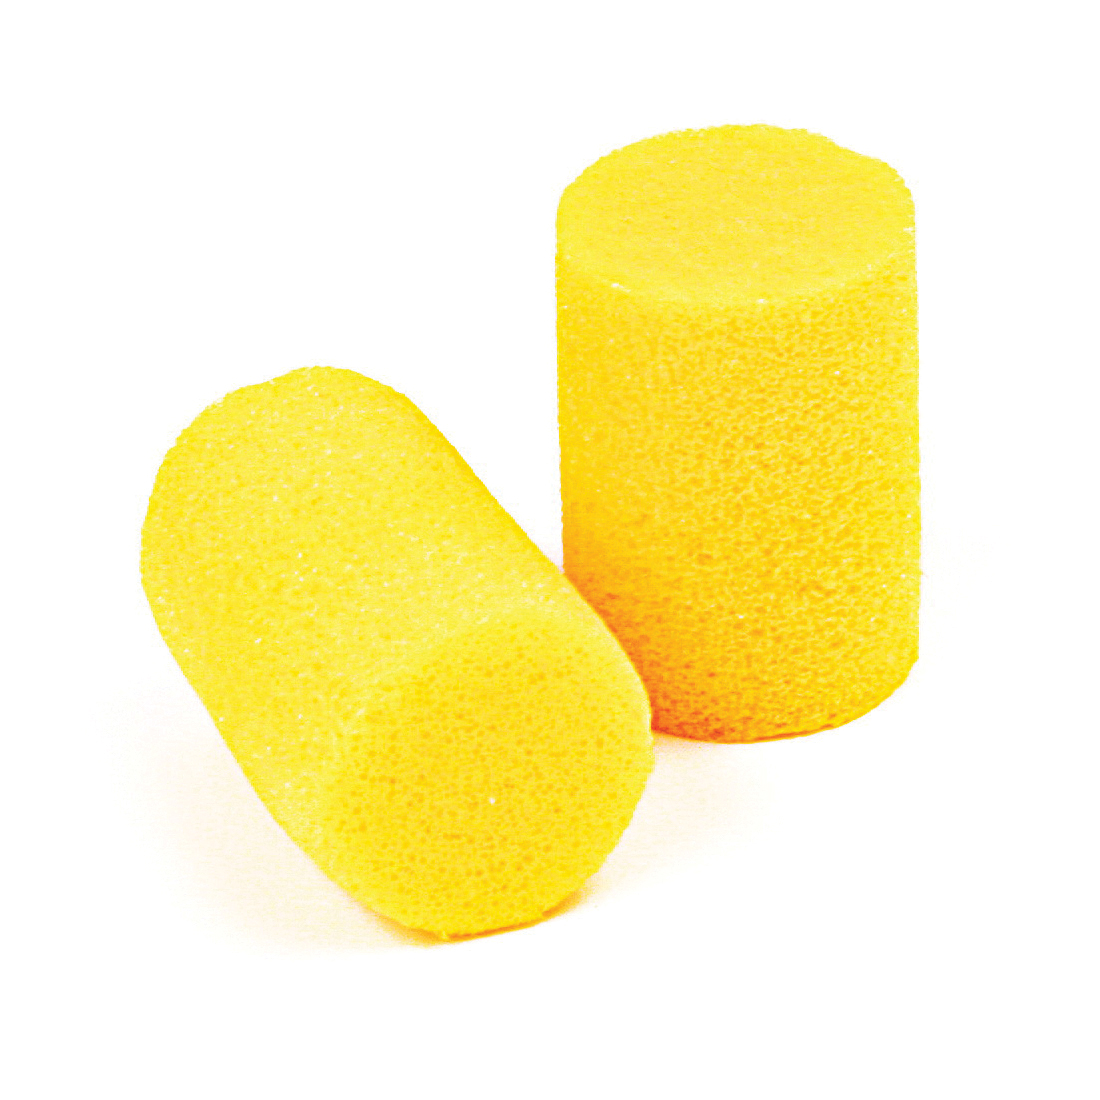 E-A-R™ Classic™ 080529-12002 Earplugs, 29 dB Noise Reduction, Cylindrical Shape, CSA Class AL, Disposable, Uncorded Design